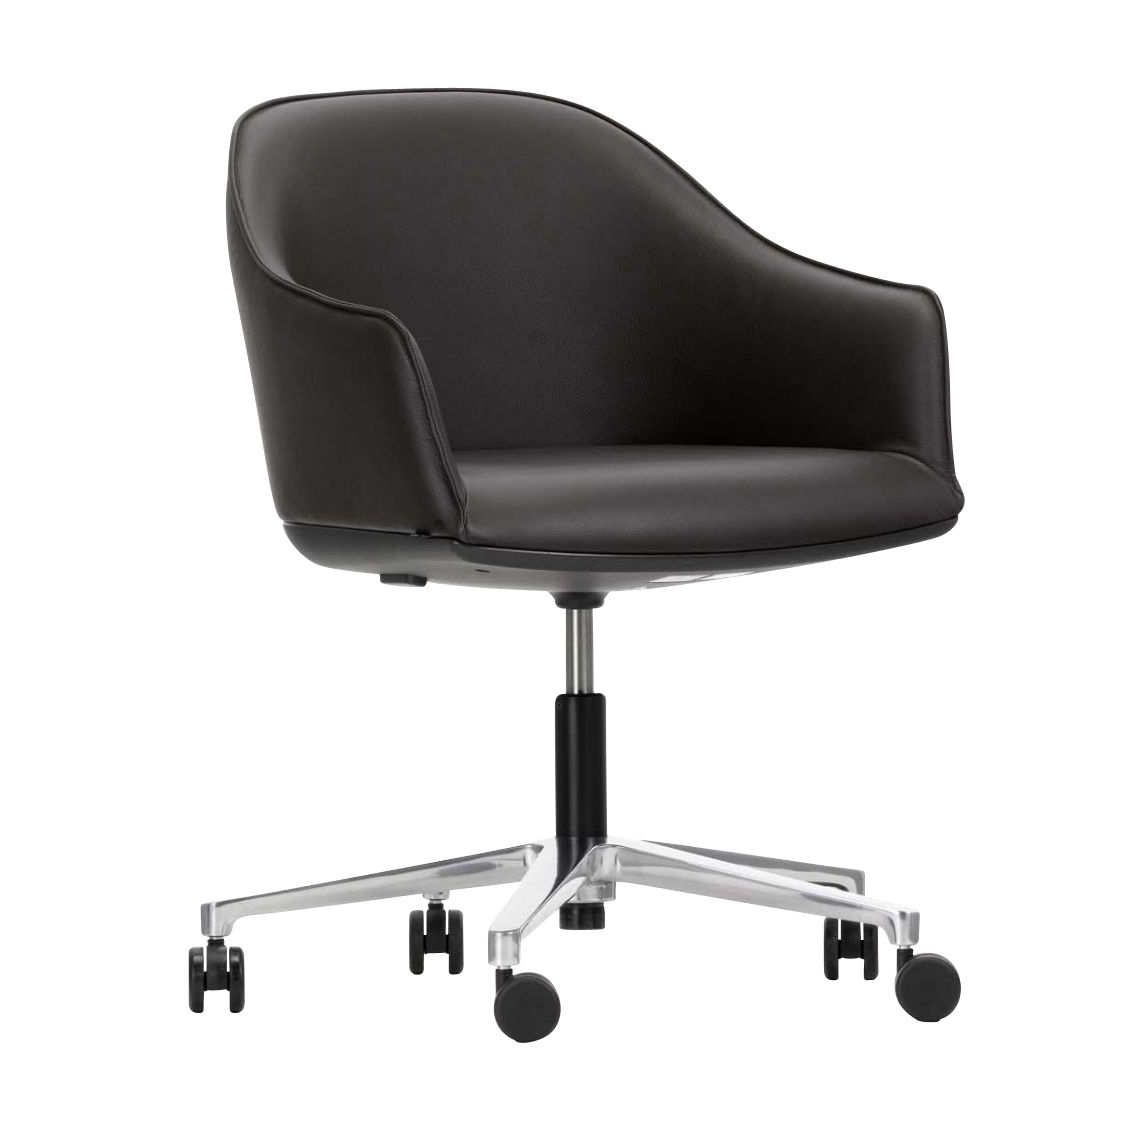 vitra ergonomic chair stand test protocol softshell office